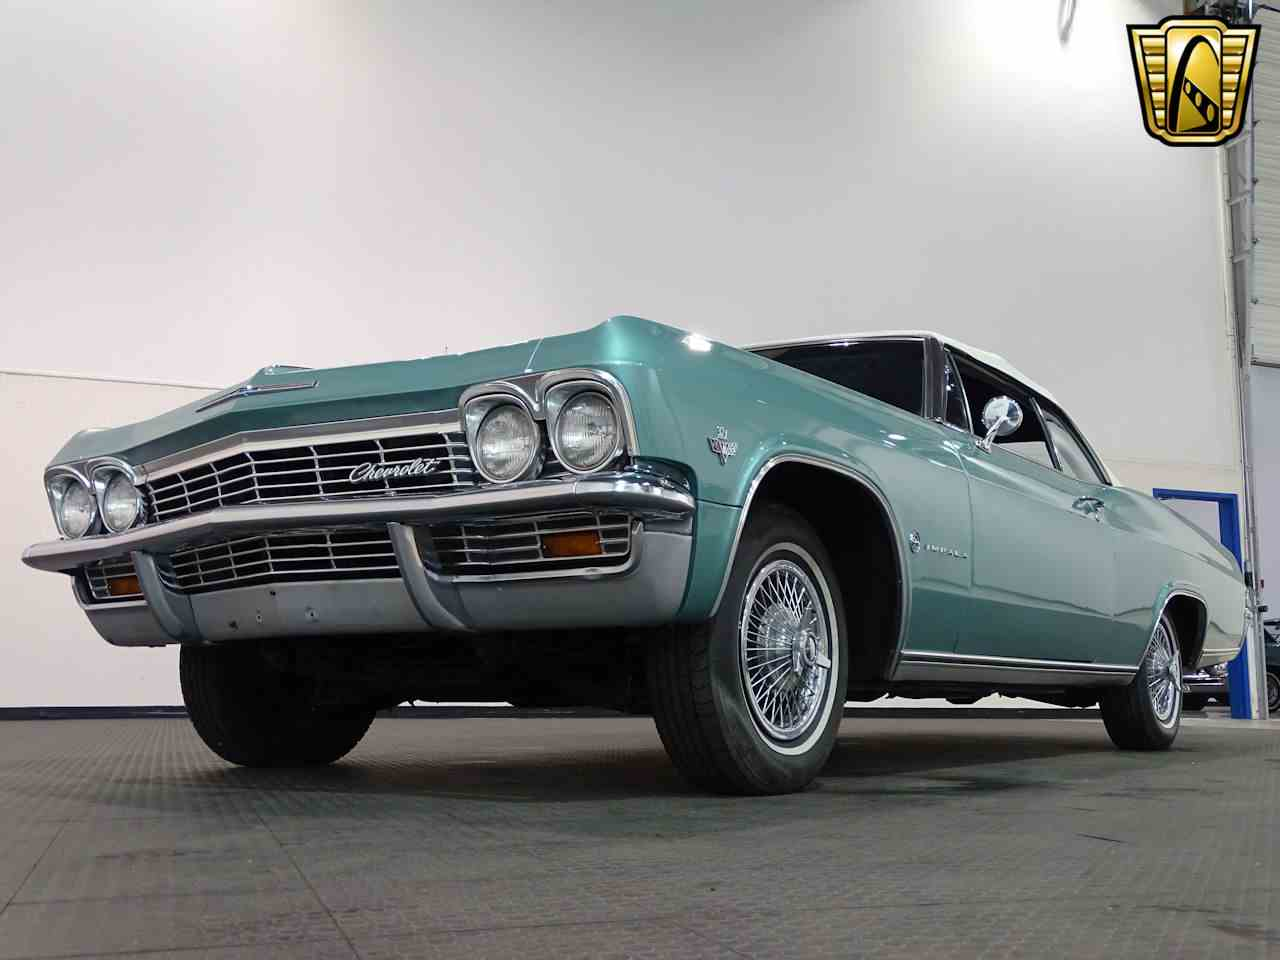 Large Picture of '65 Impala located in Indiana - $34,995.00 - L5YV